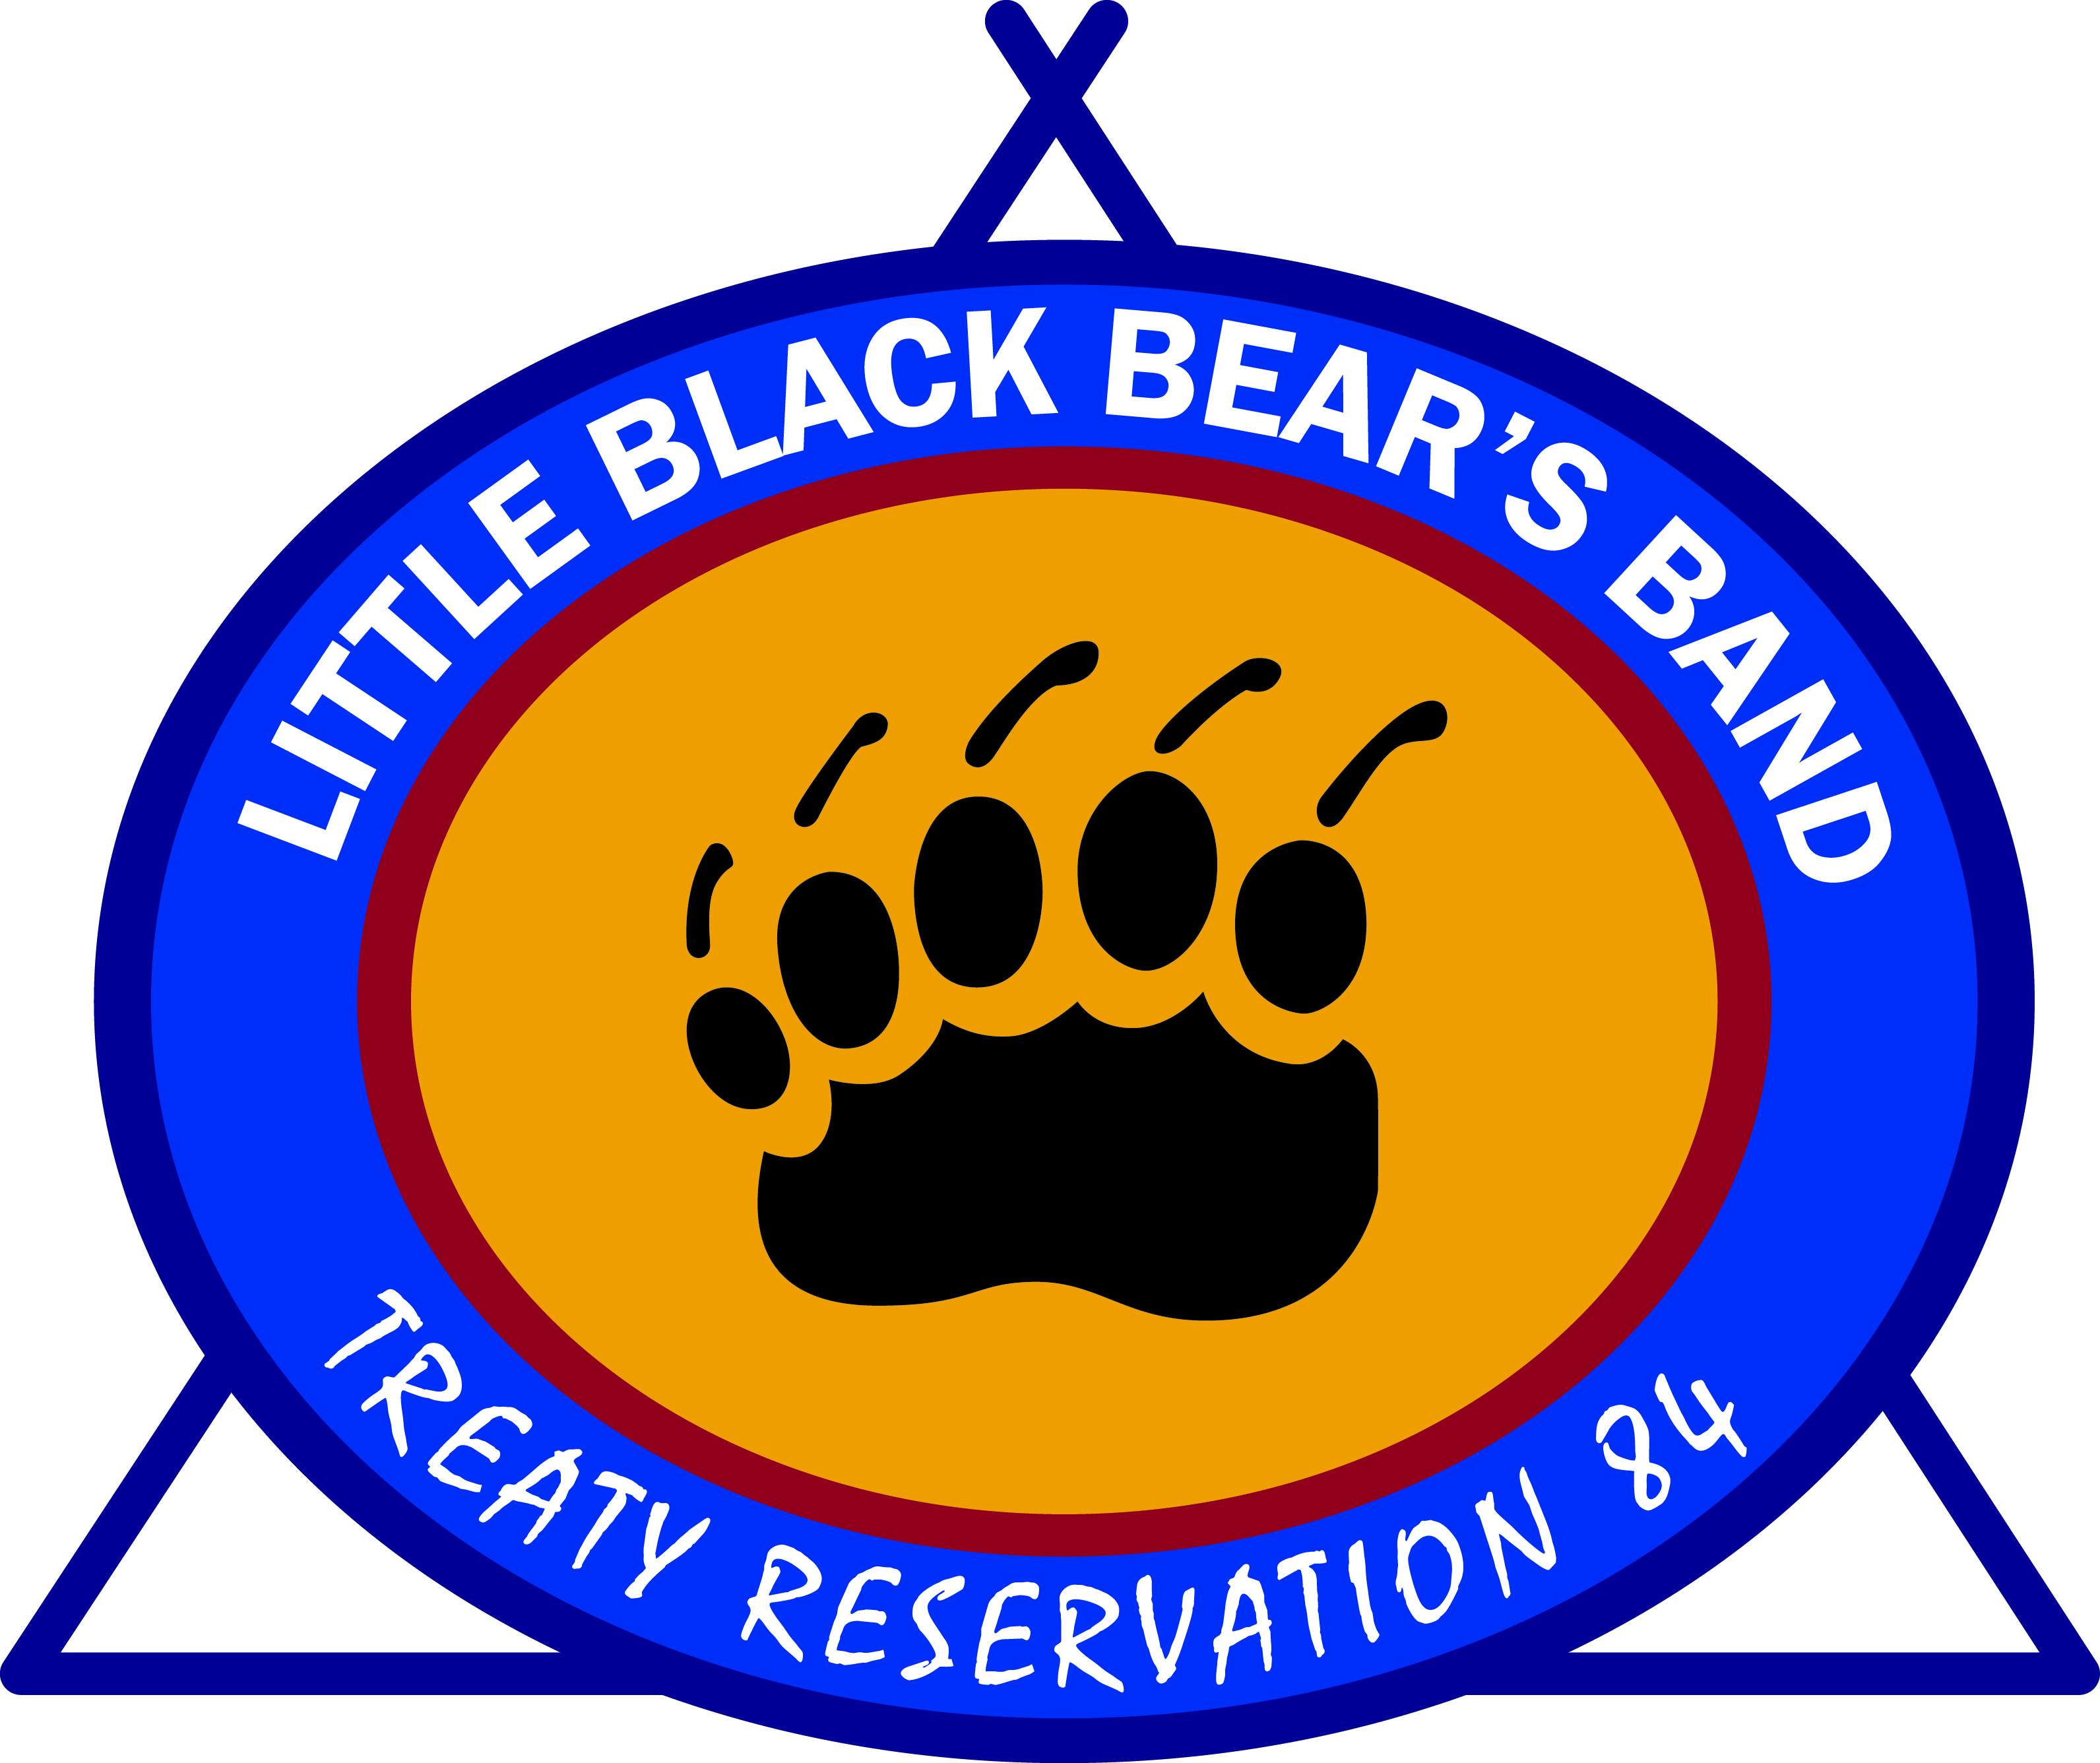 Little Black Bear's Band Logo – The Elements and Meanings